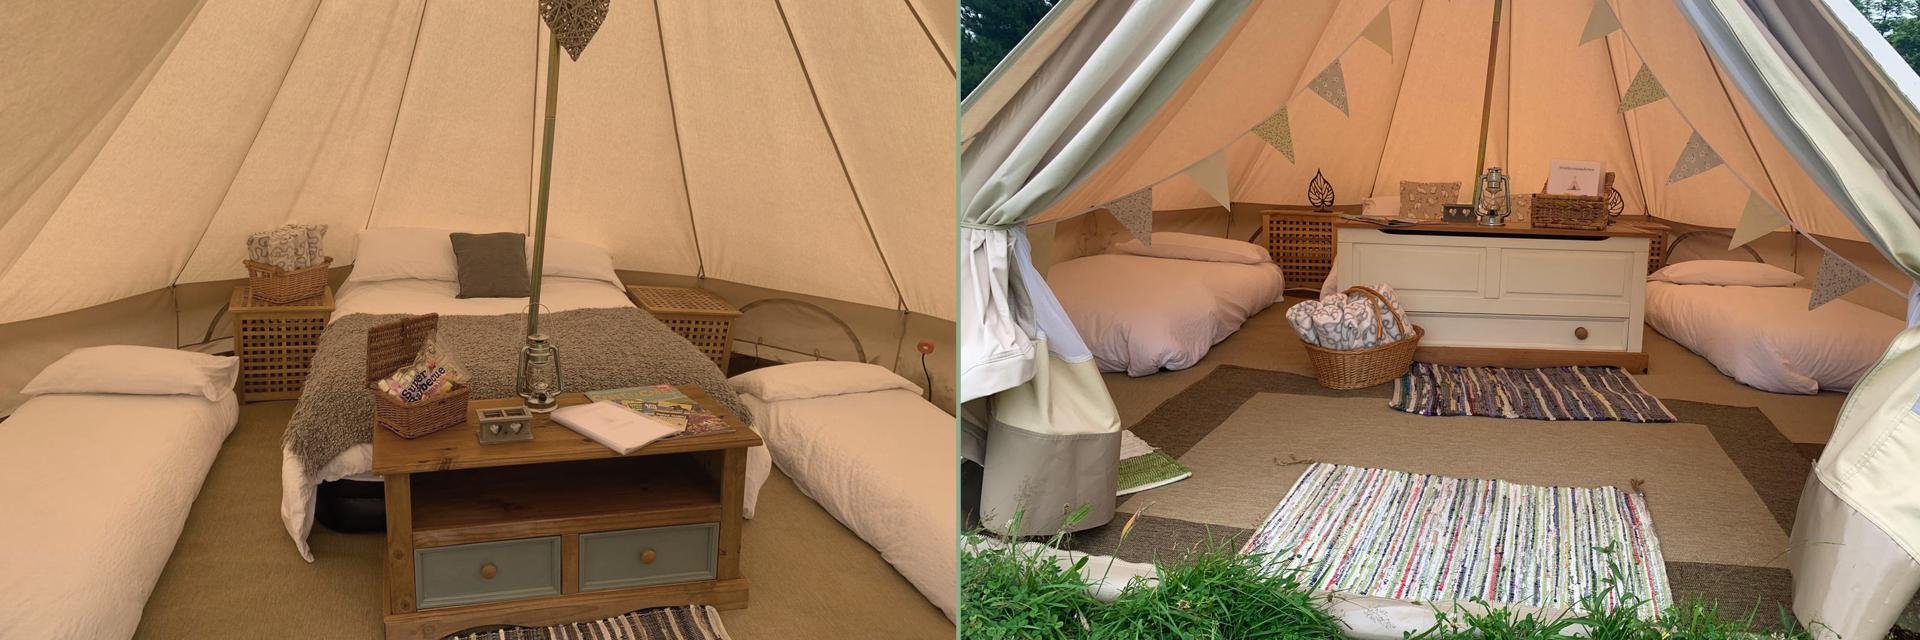 Inside our Glamping Bell Tents near Tenby, Pembrokeshire